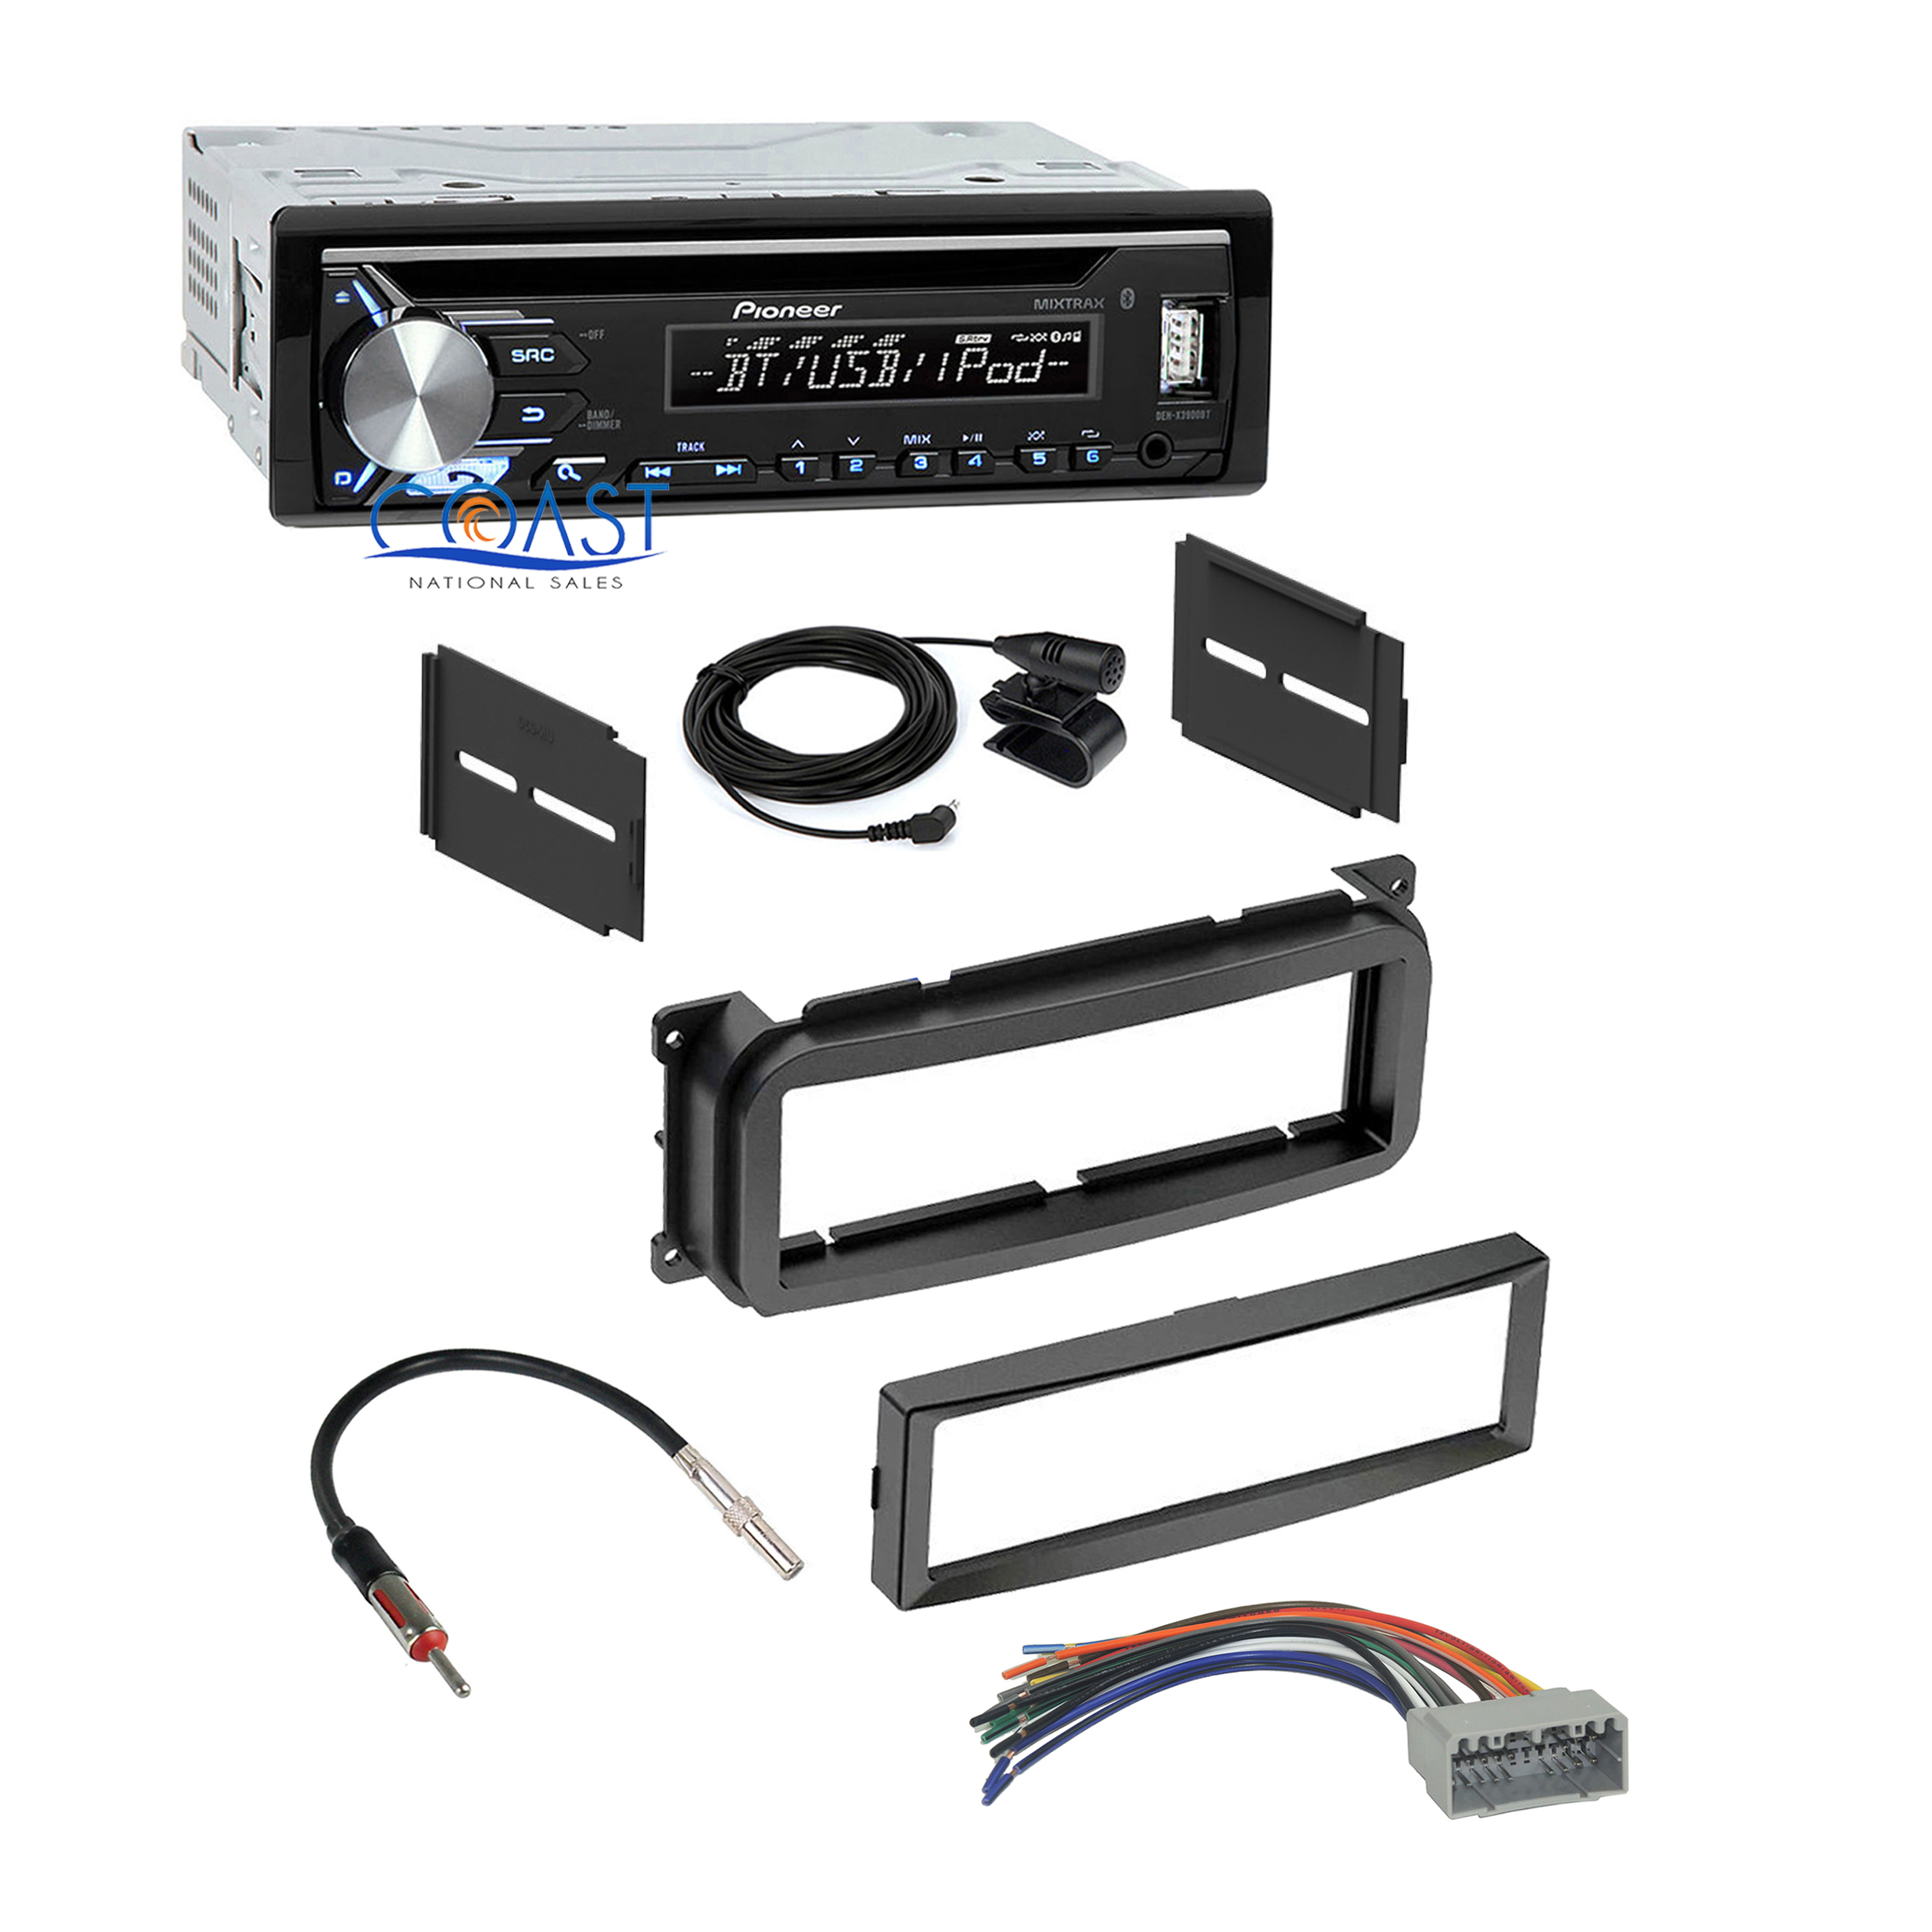 details about pioneer car stereo bluetooth usb dash kit harness for 02-up  chrysler dodge jeep